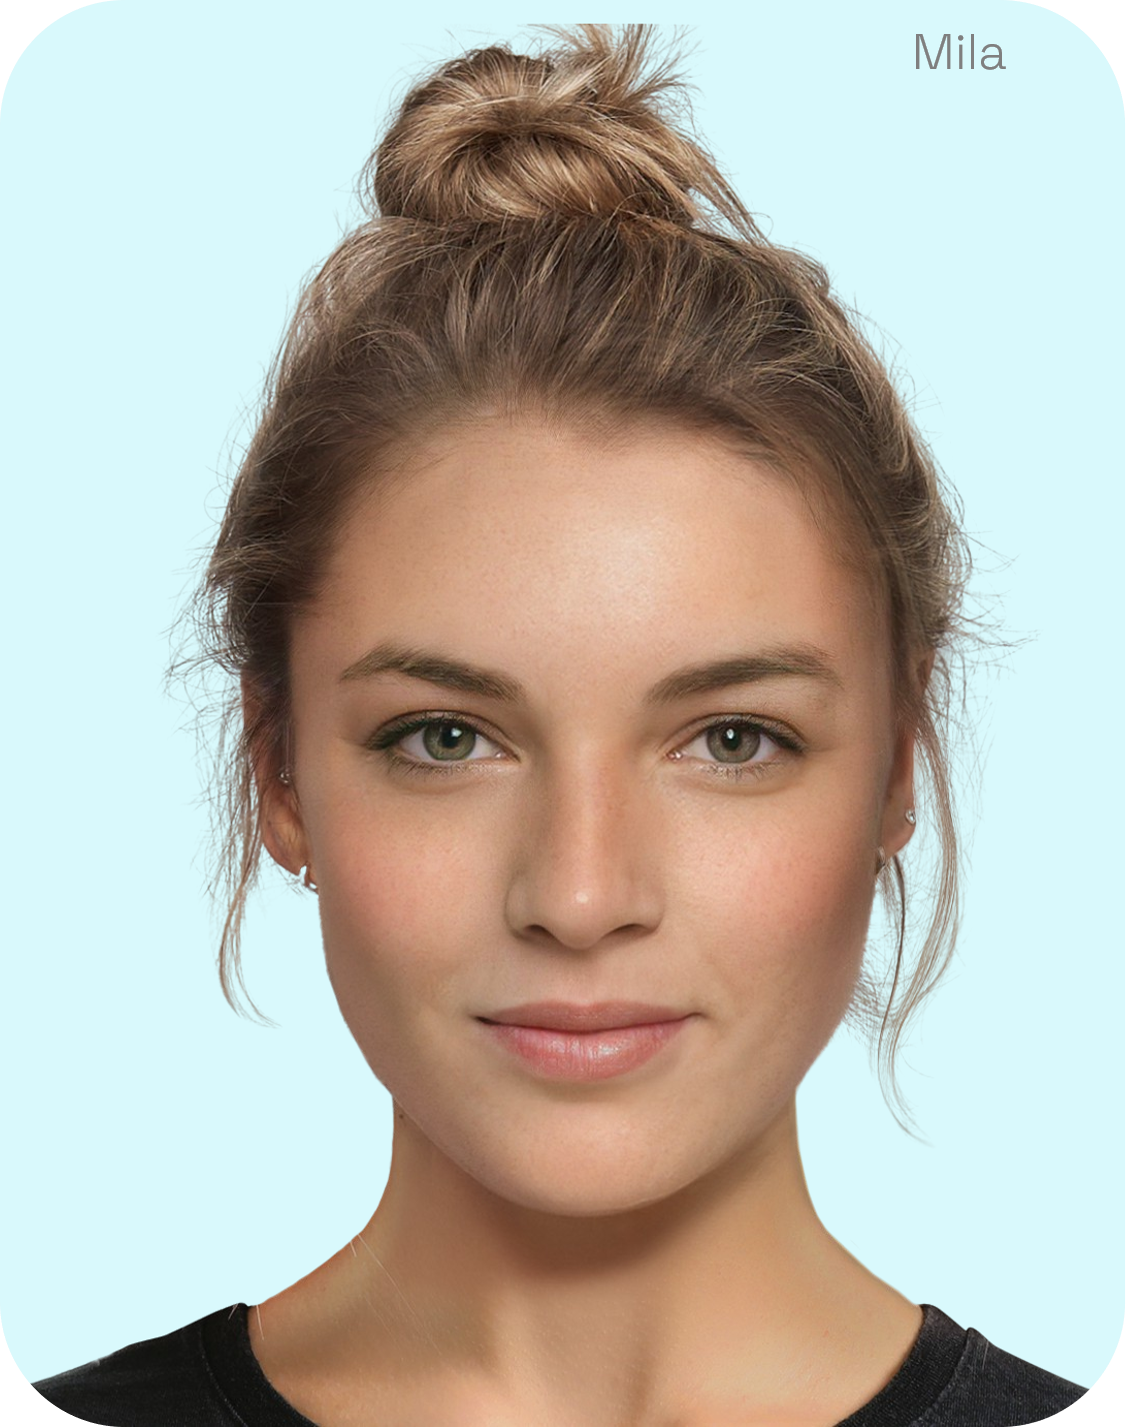 mila generated model from lalaland